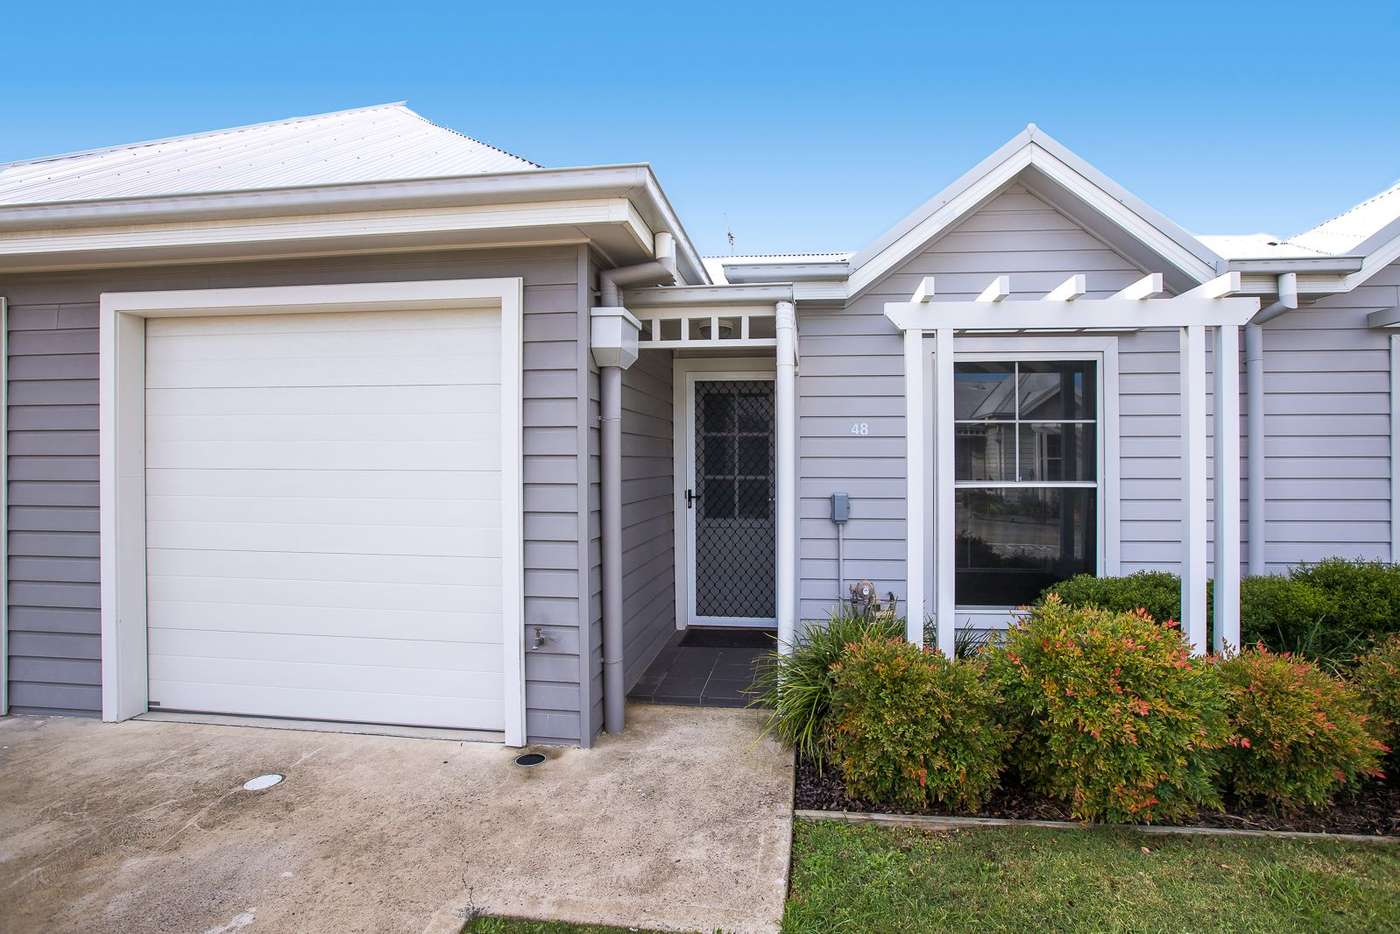 Main view of Homely villa listing, 48/115 Christo Road, Waratah NSW 2298